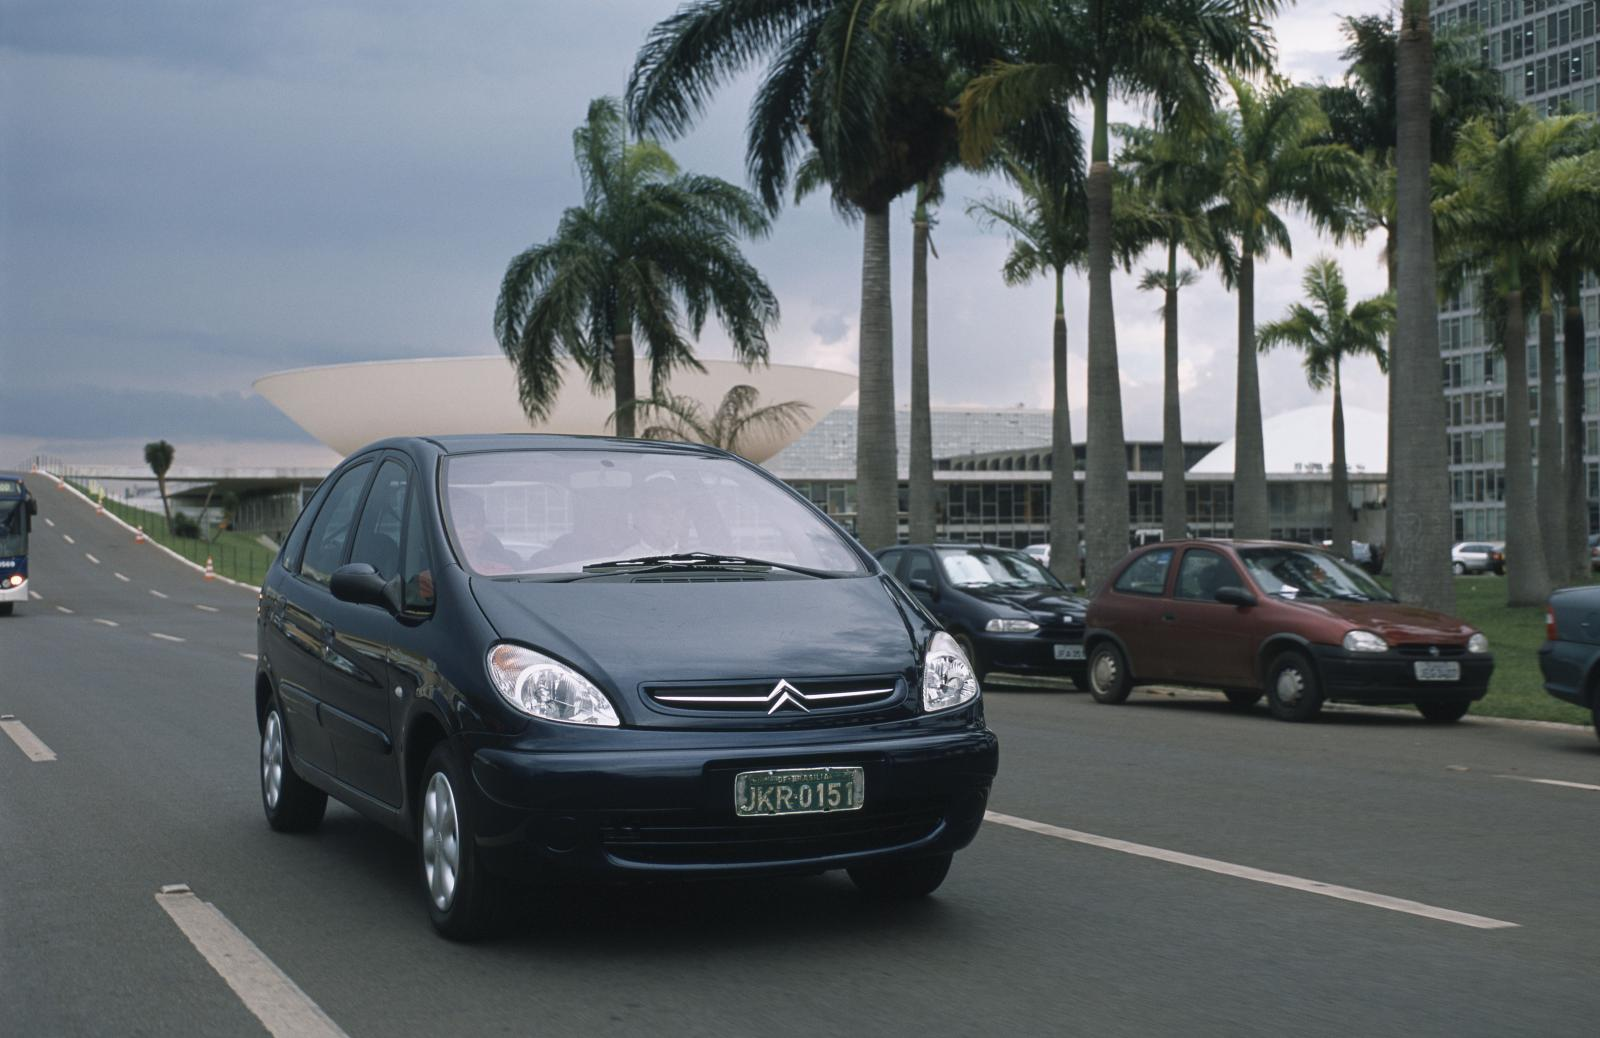 Xsara Picasso 3/4 front